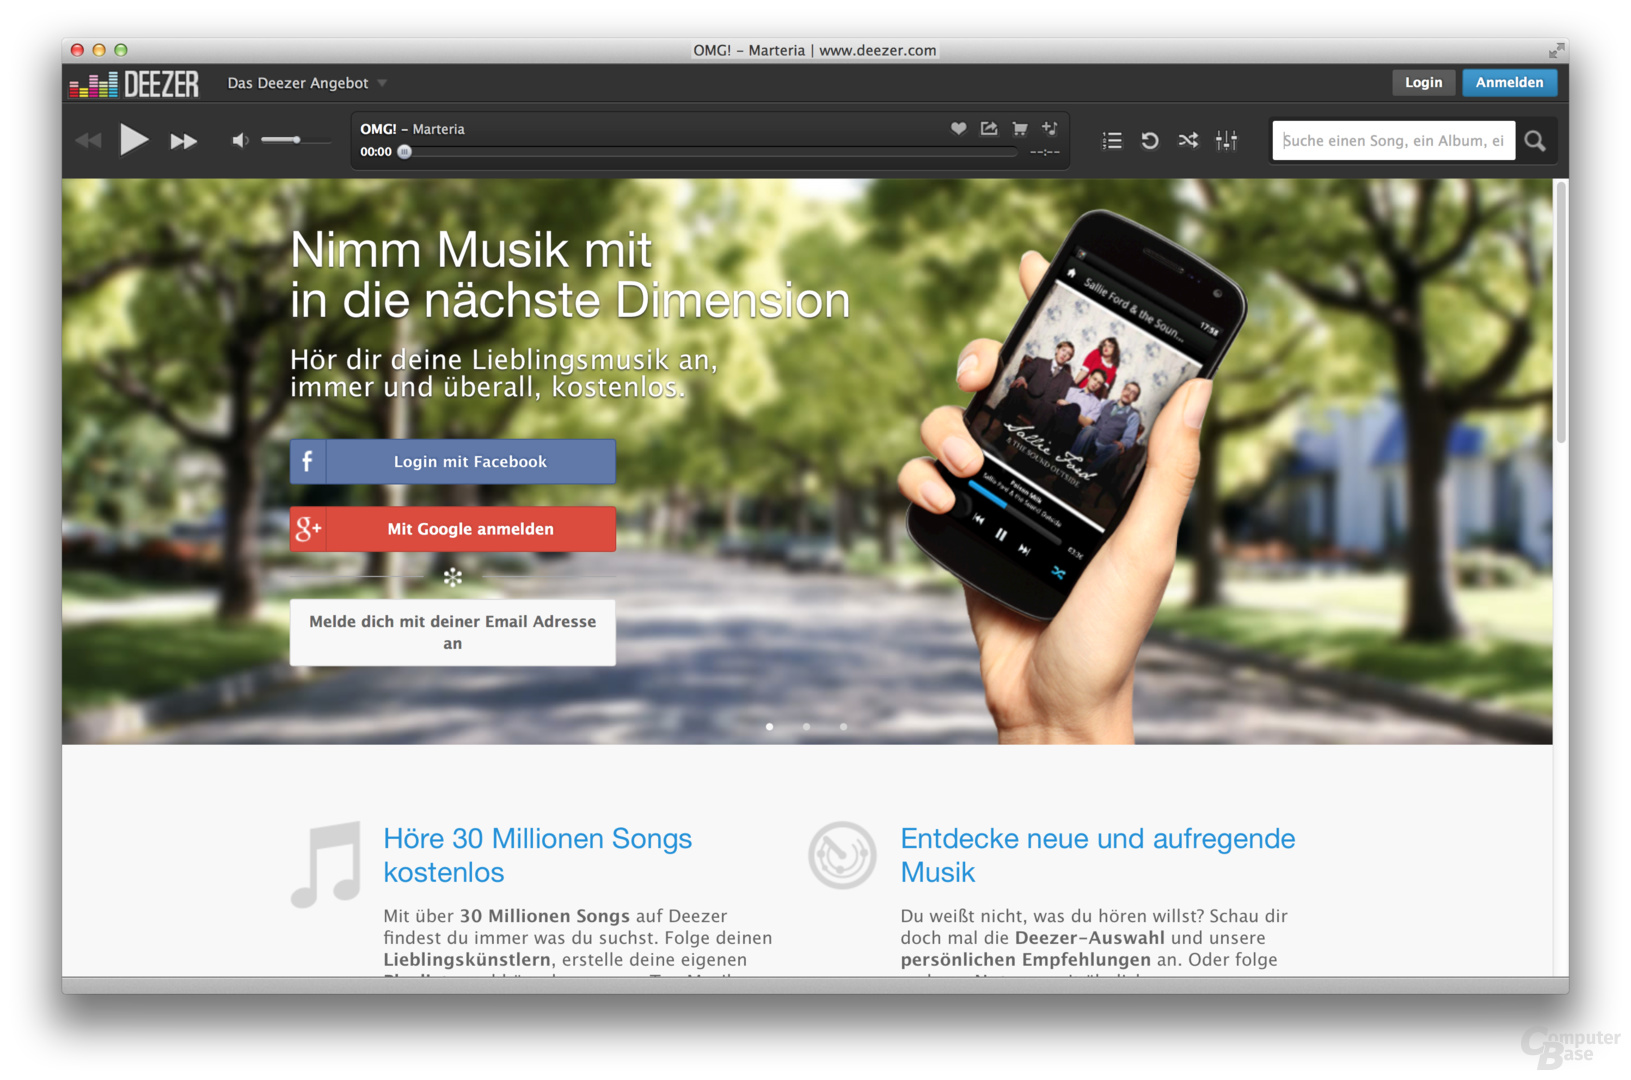 6 × Musik-Streaming im Test: Deezer, Google, Napster, Spotify und Co.